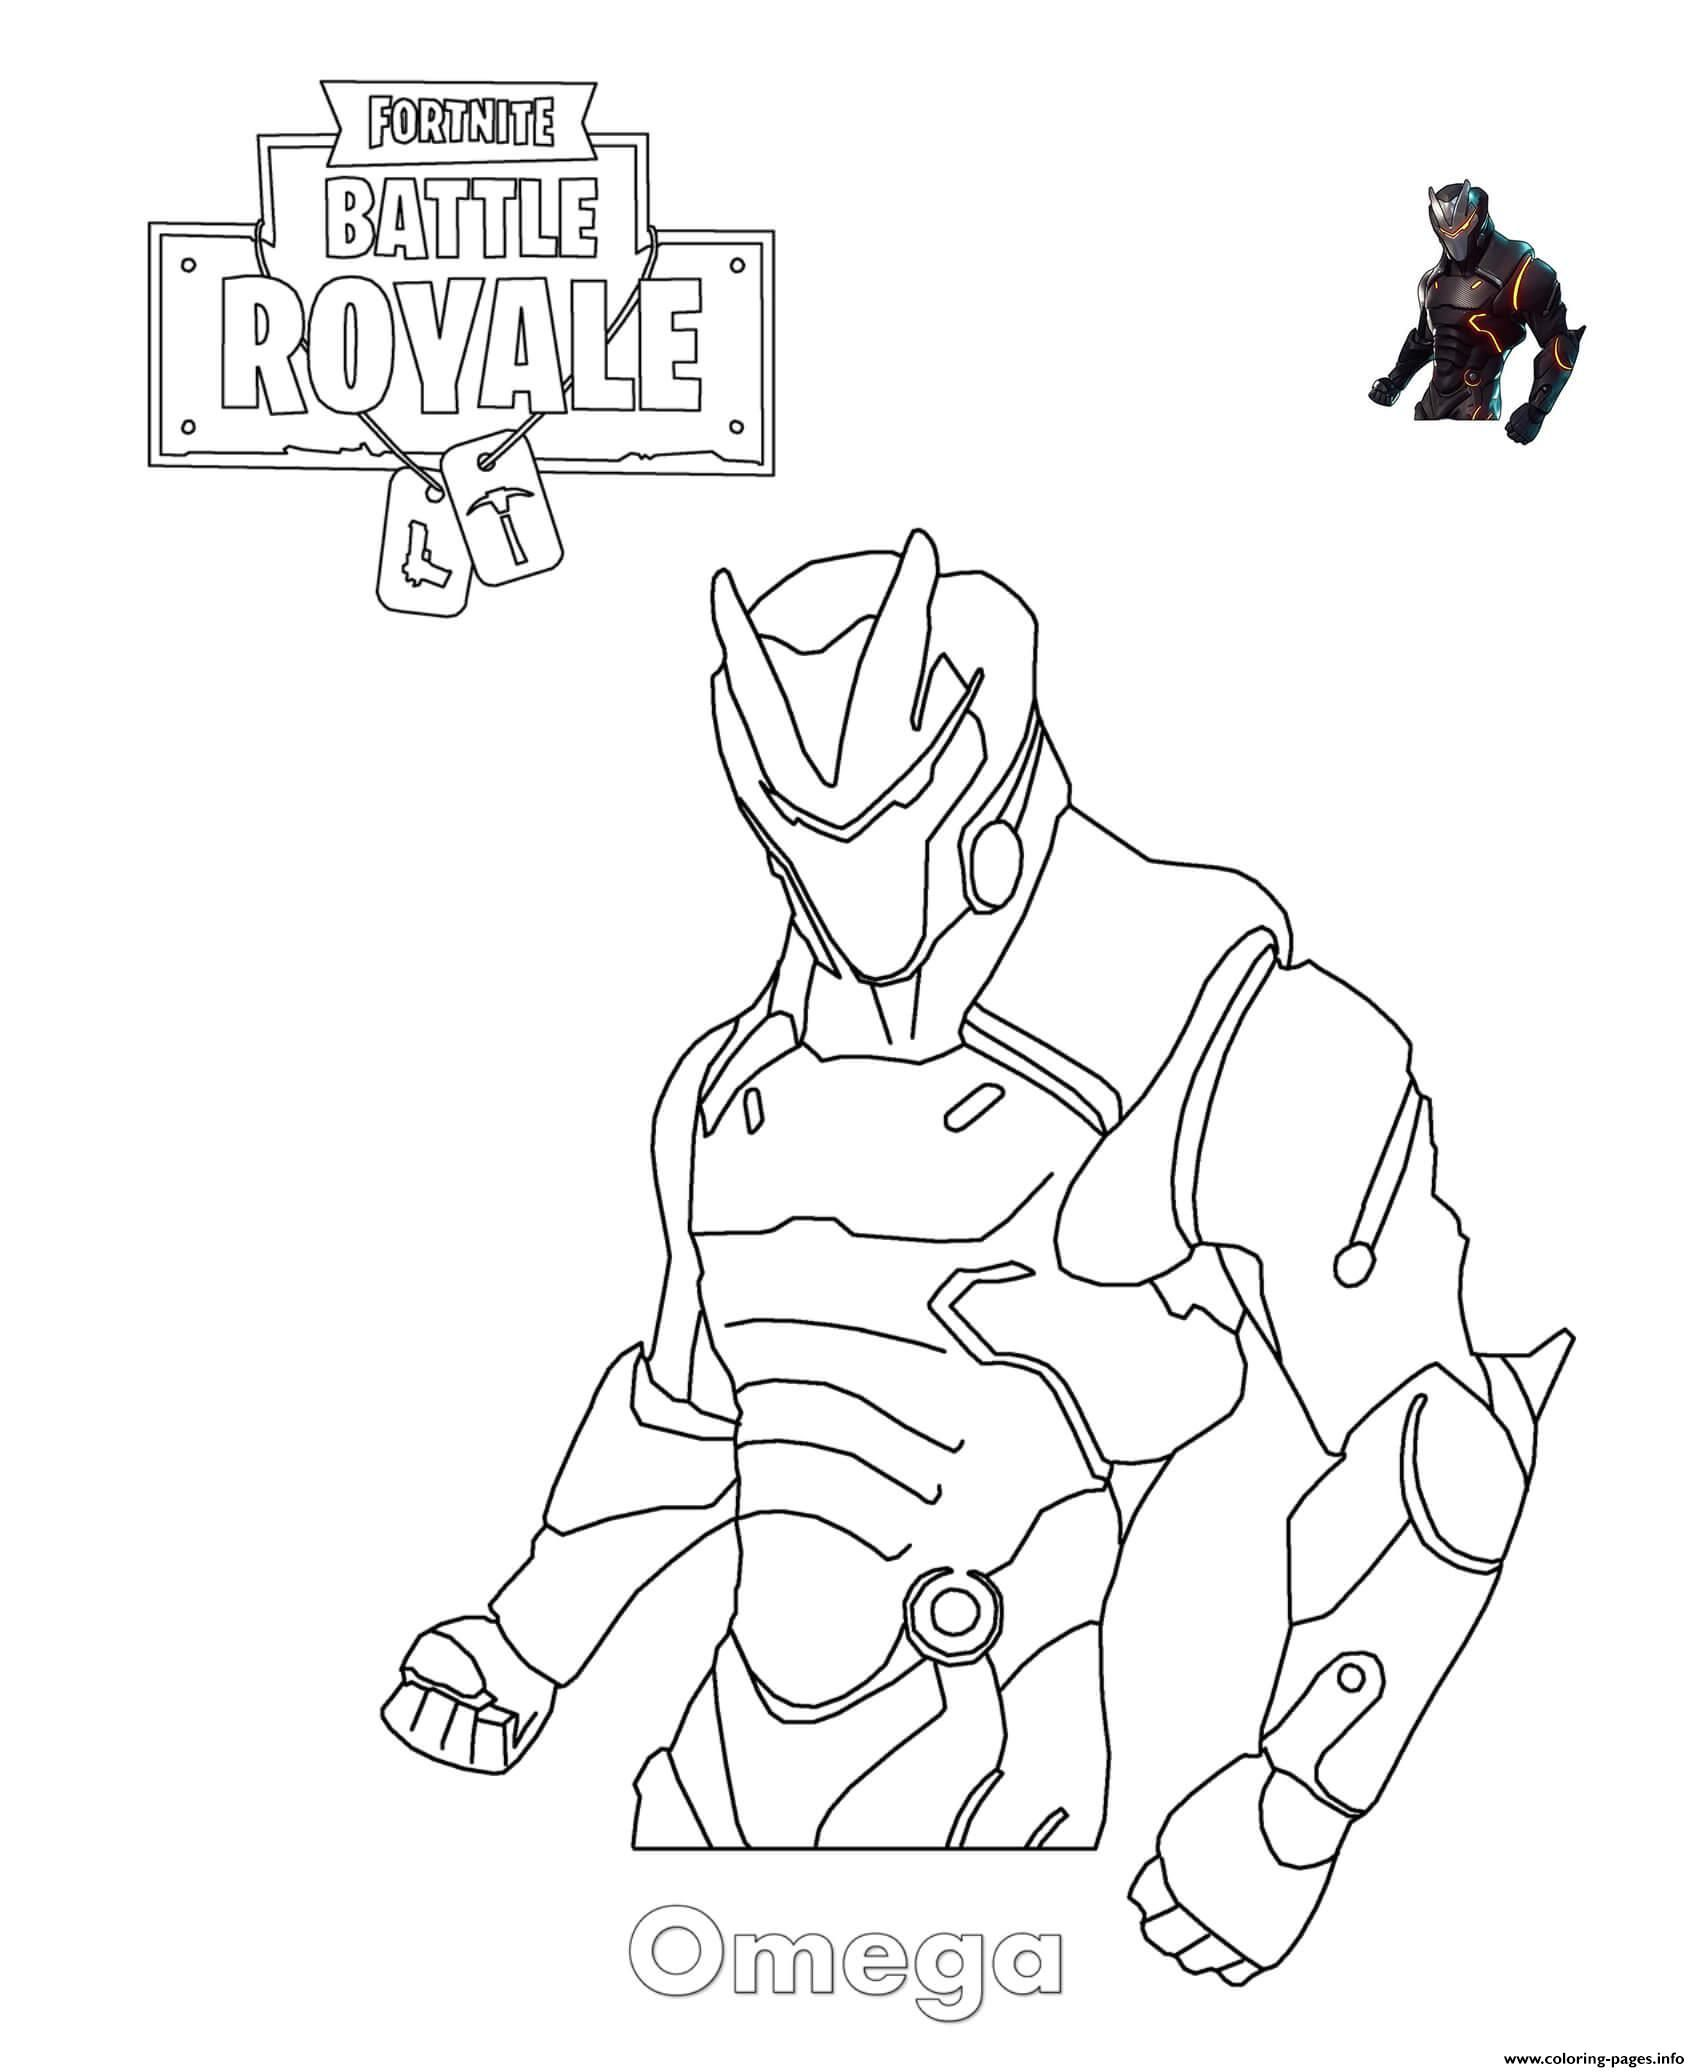 Print Omega Fortnite coloring pages | Cool coloring pages ...